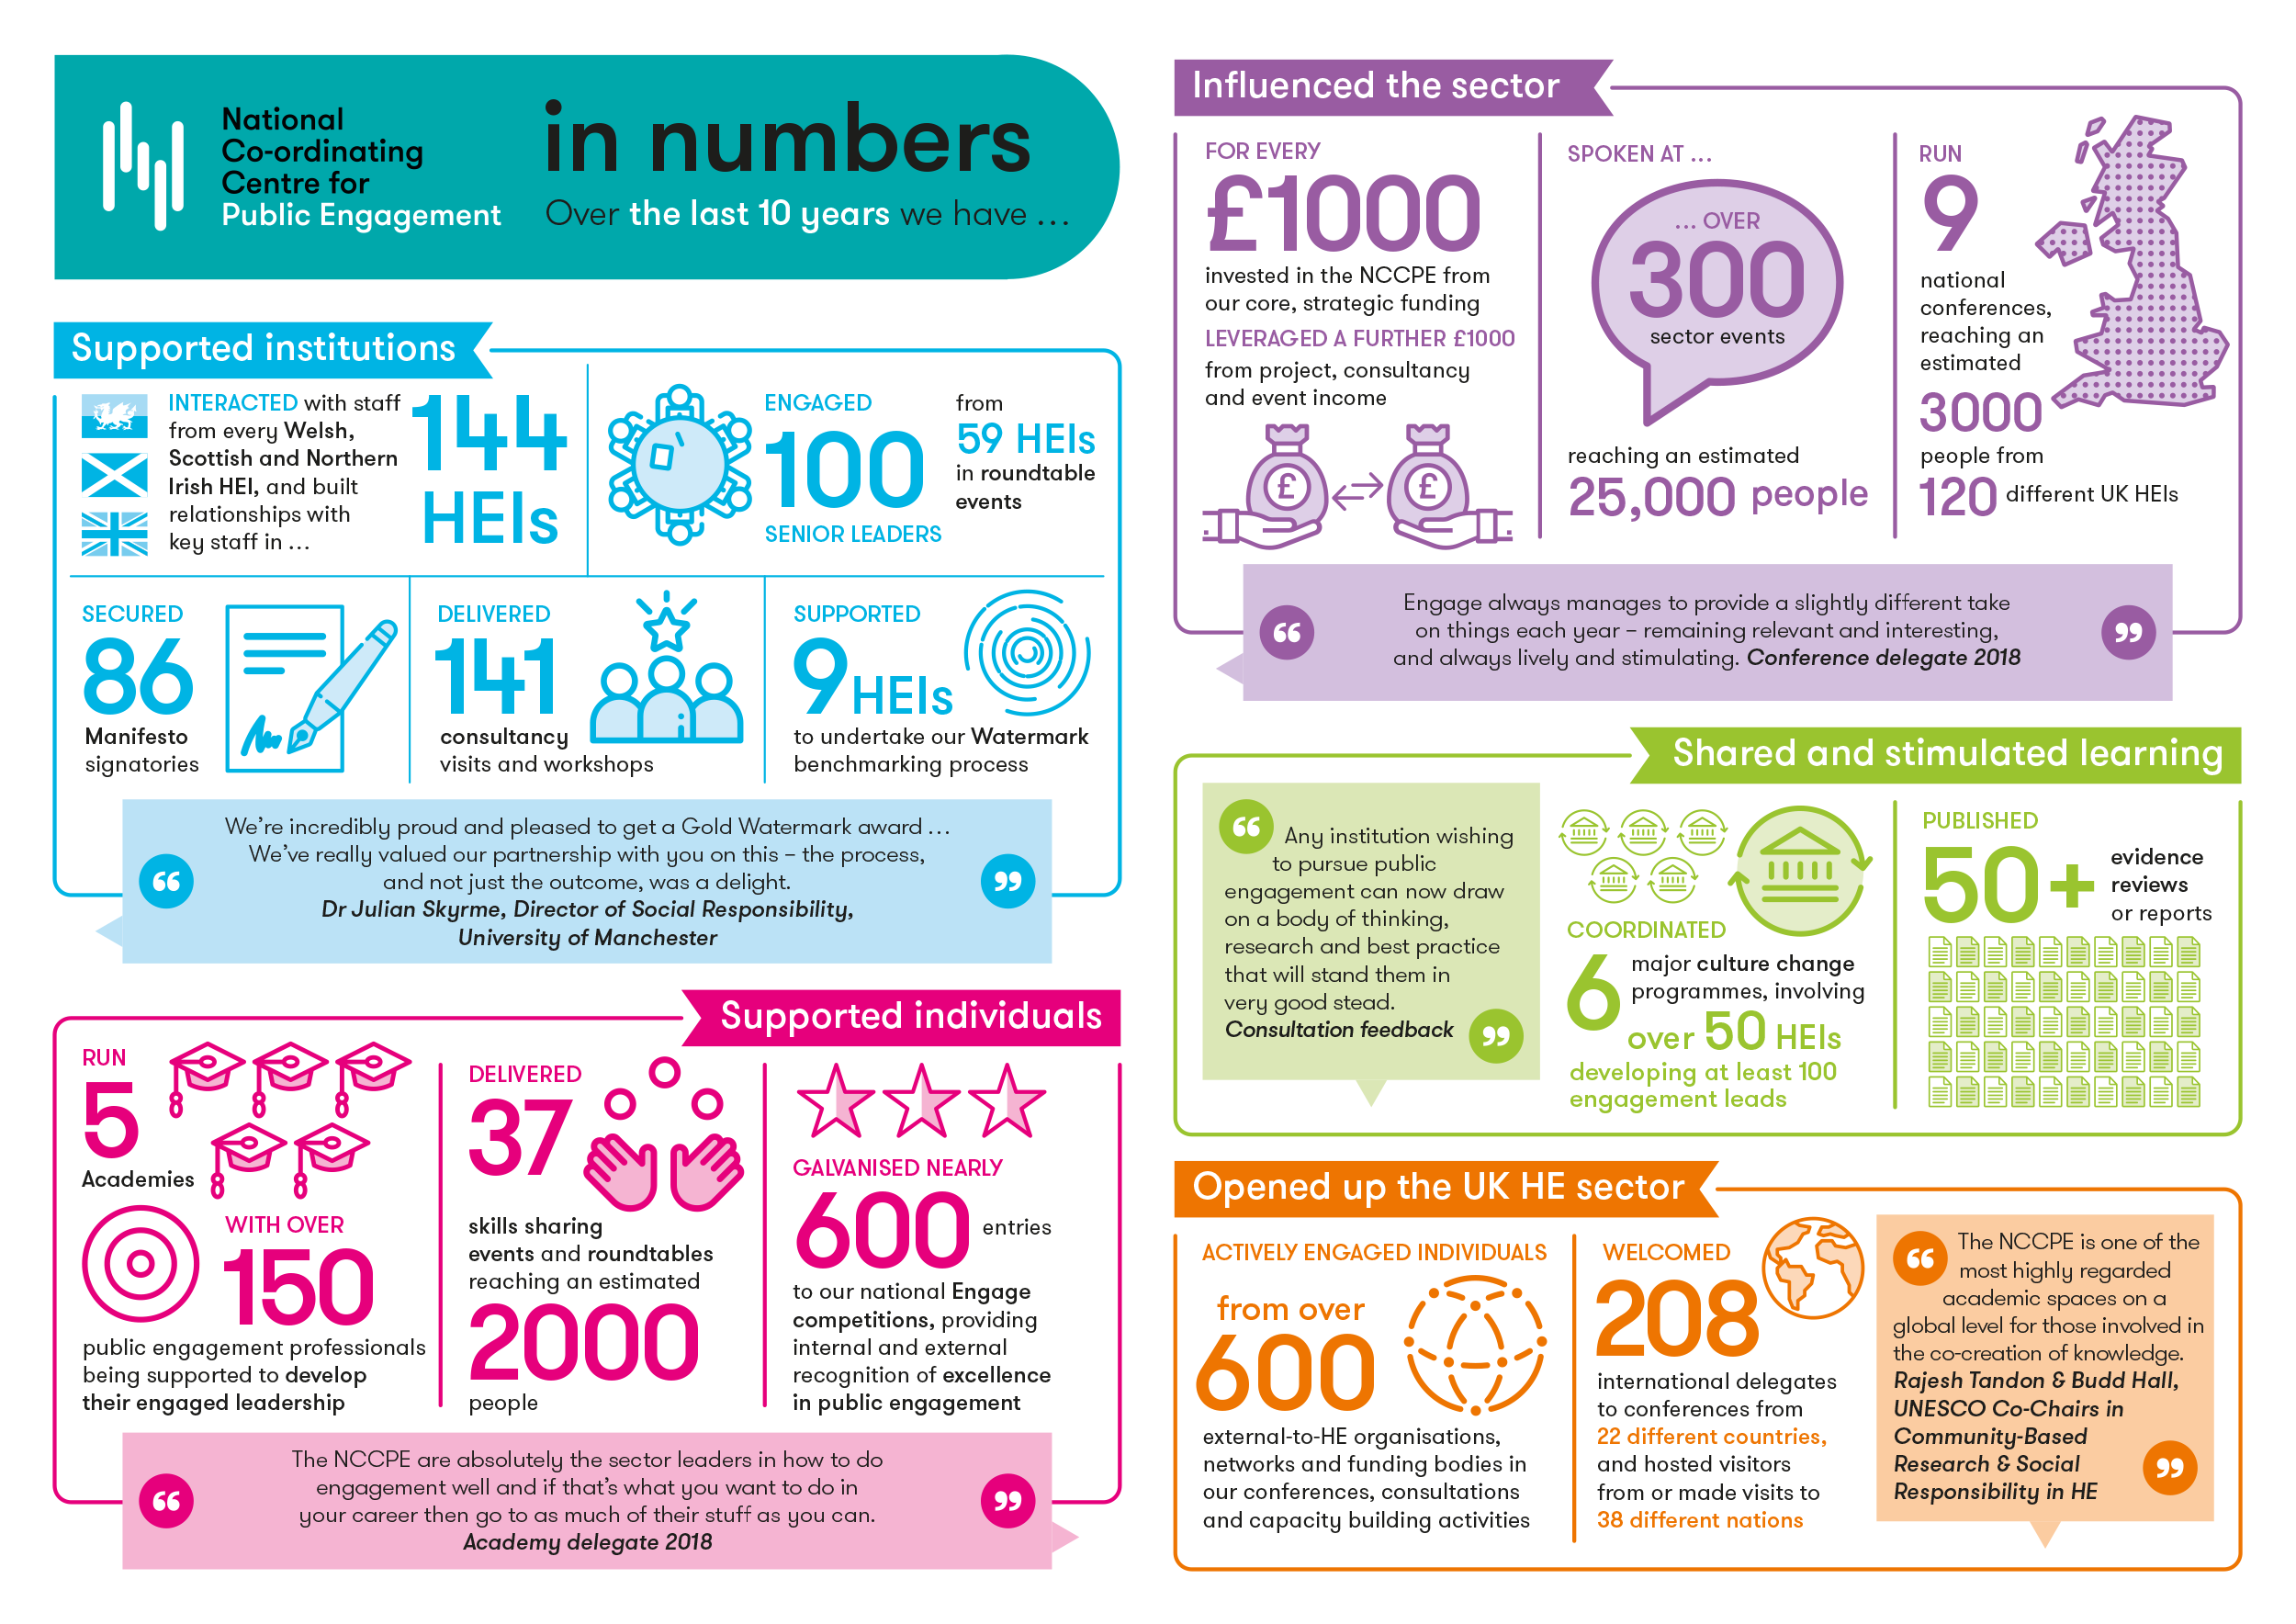 A3 print version of the NCCPE infographic